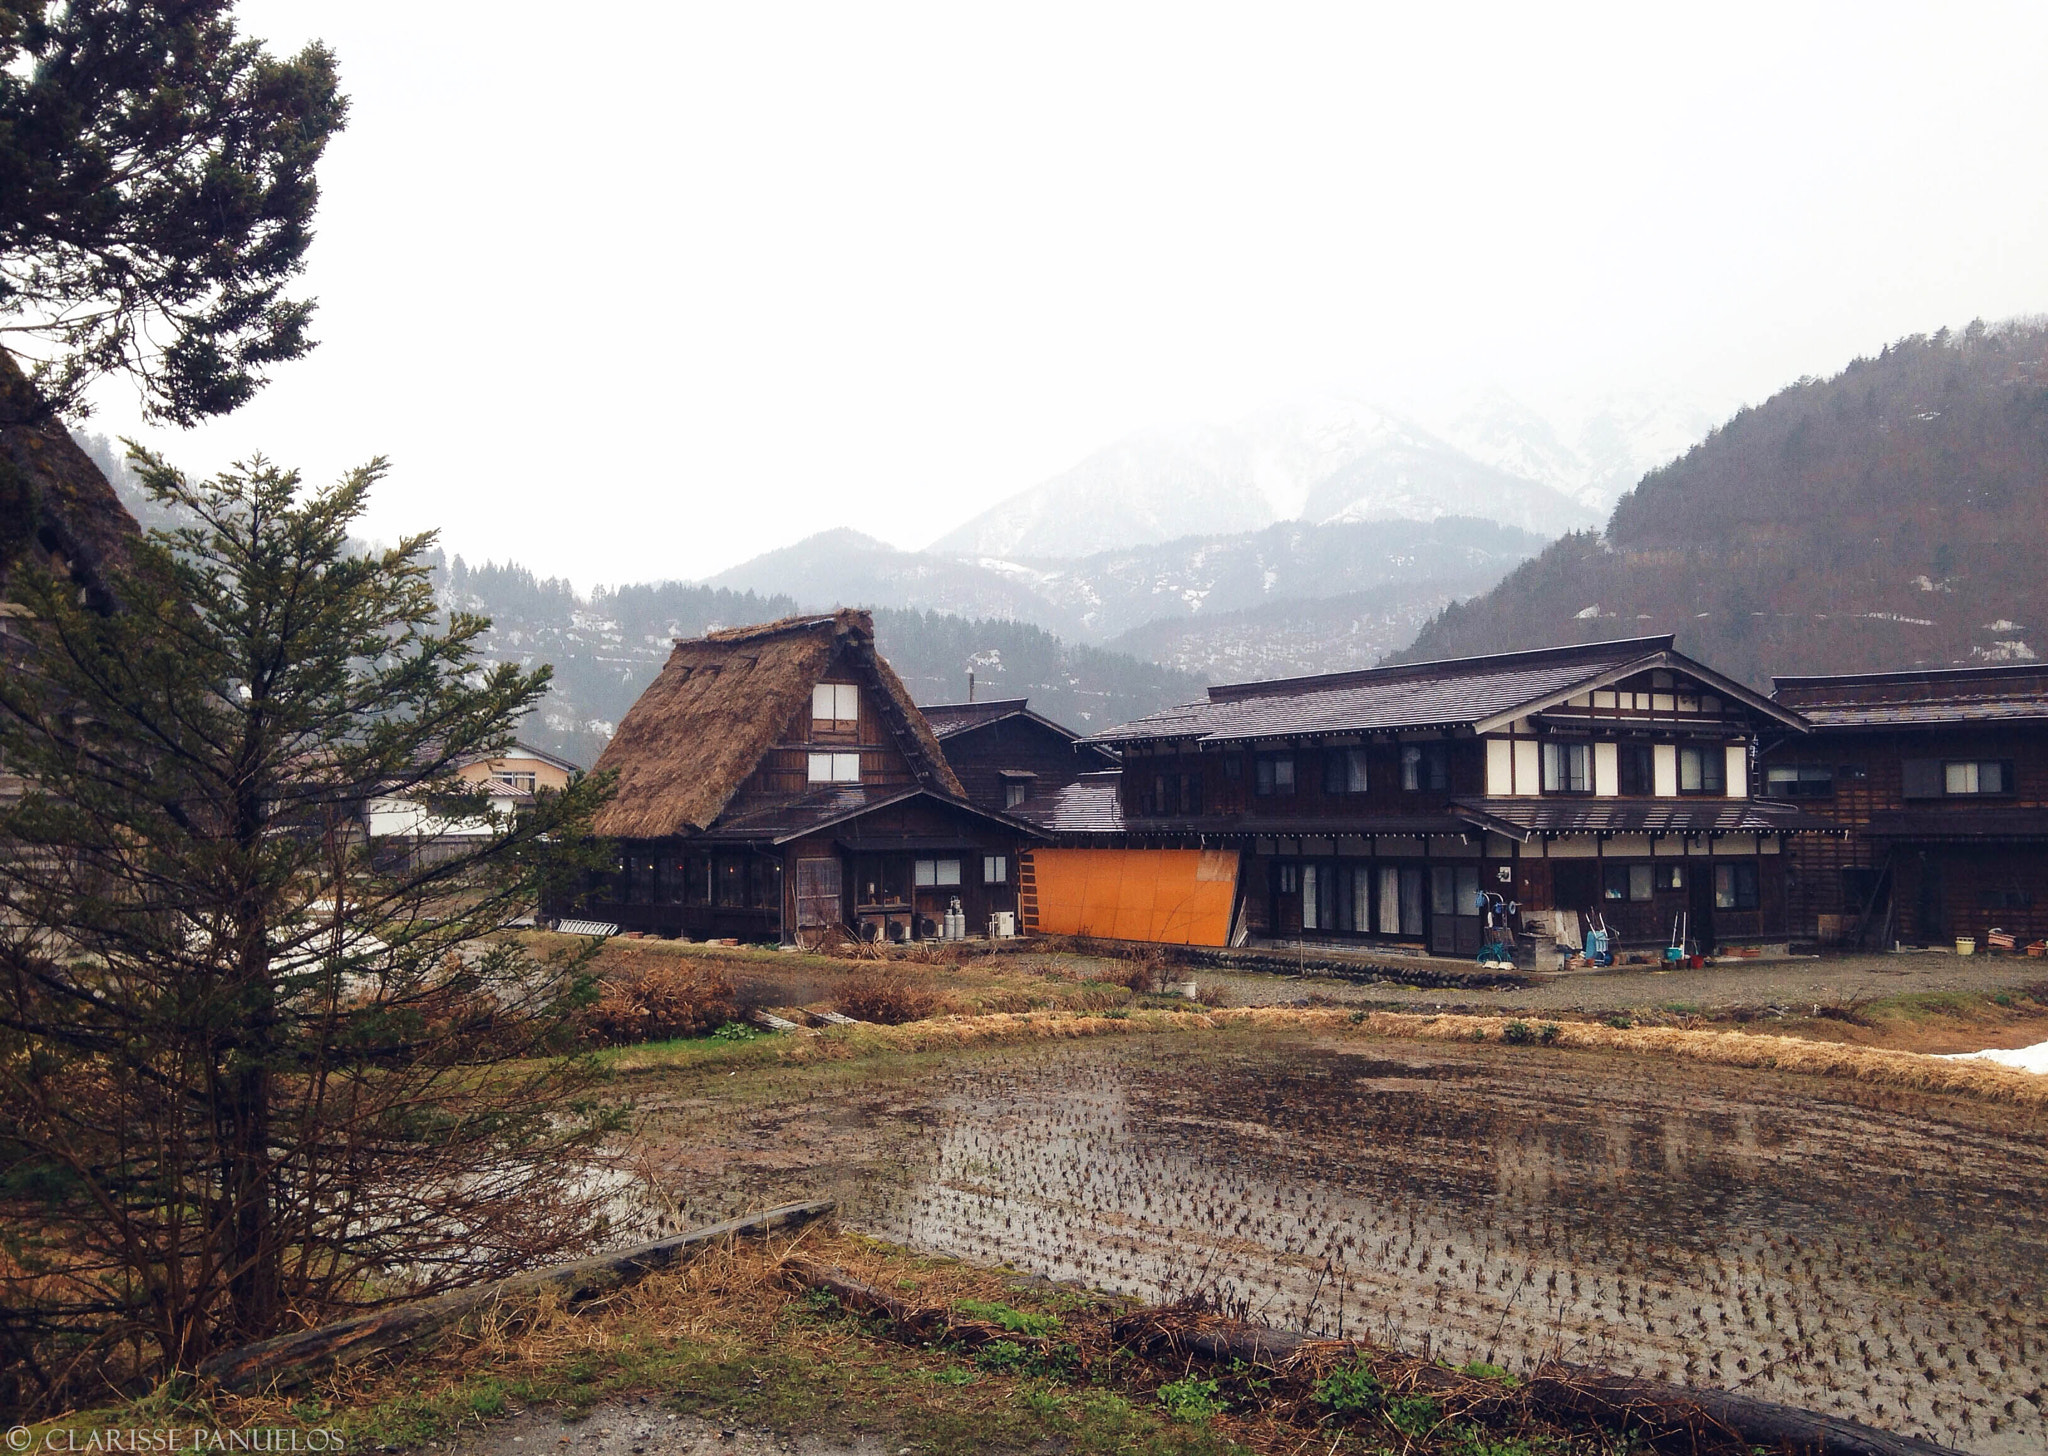 ead436657a0019d50a08a4e747a0de1f - Japan Travel Blog April 2015: Shirakawa-go